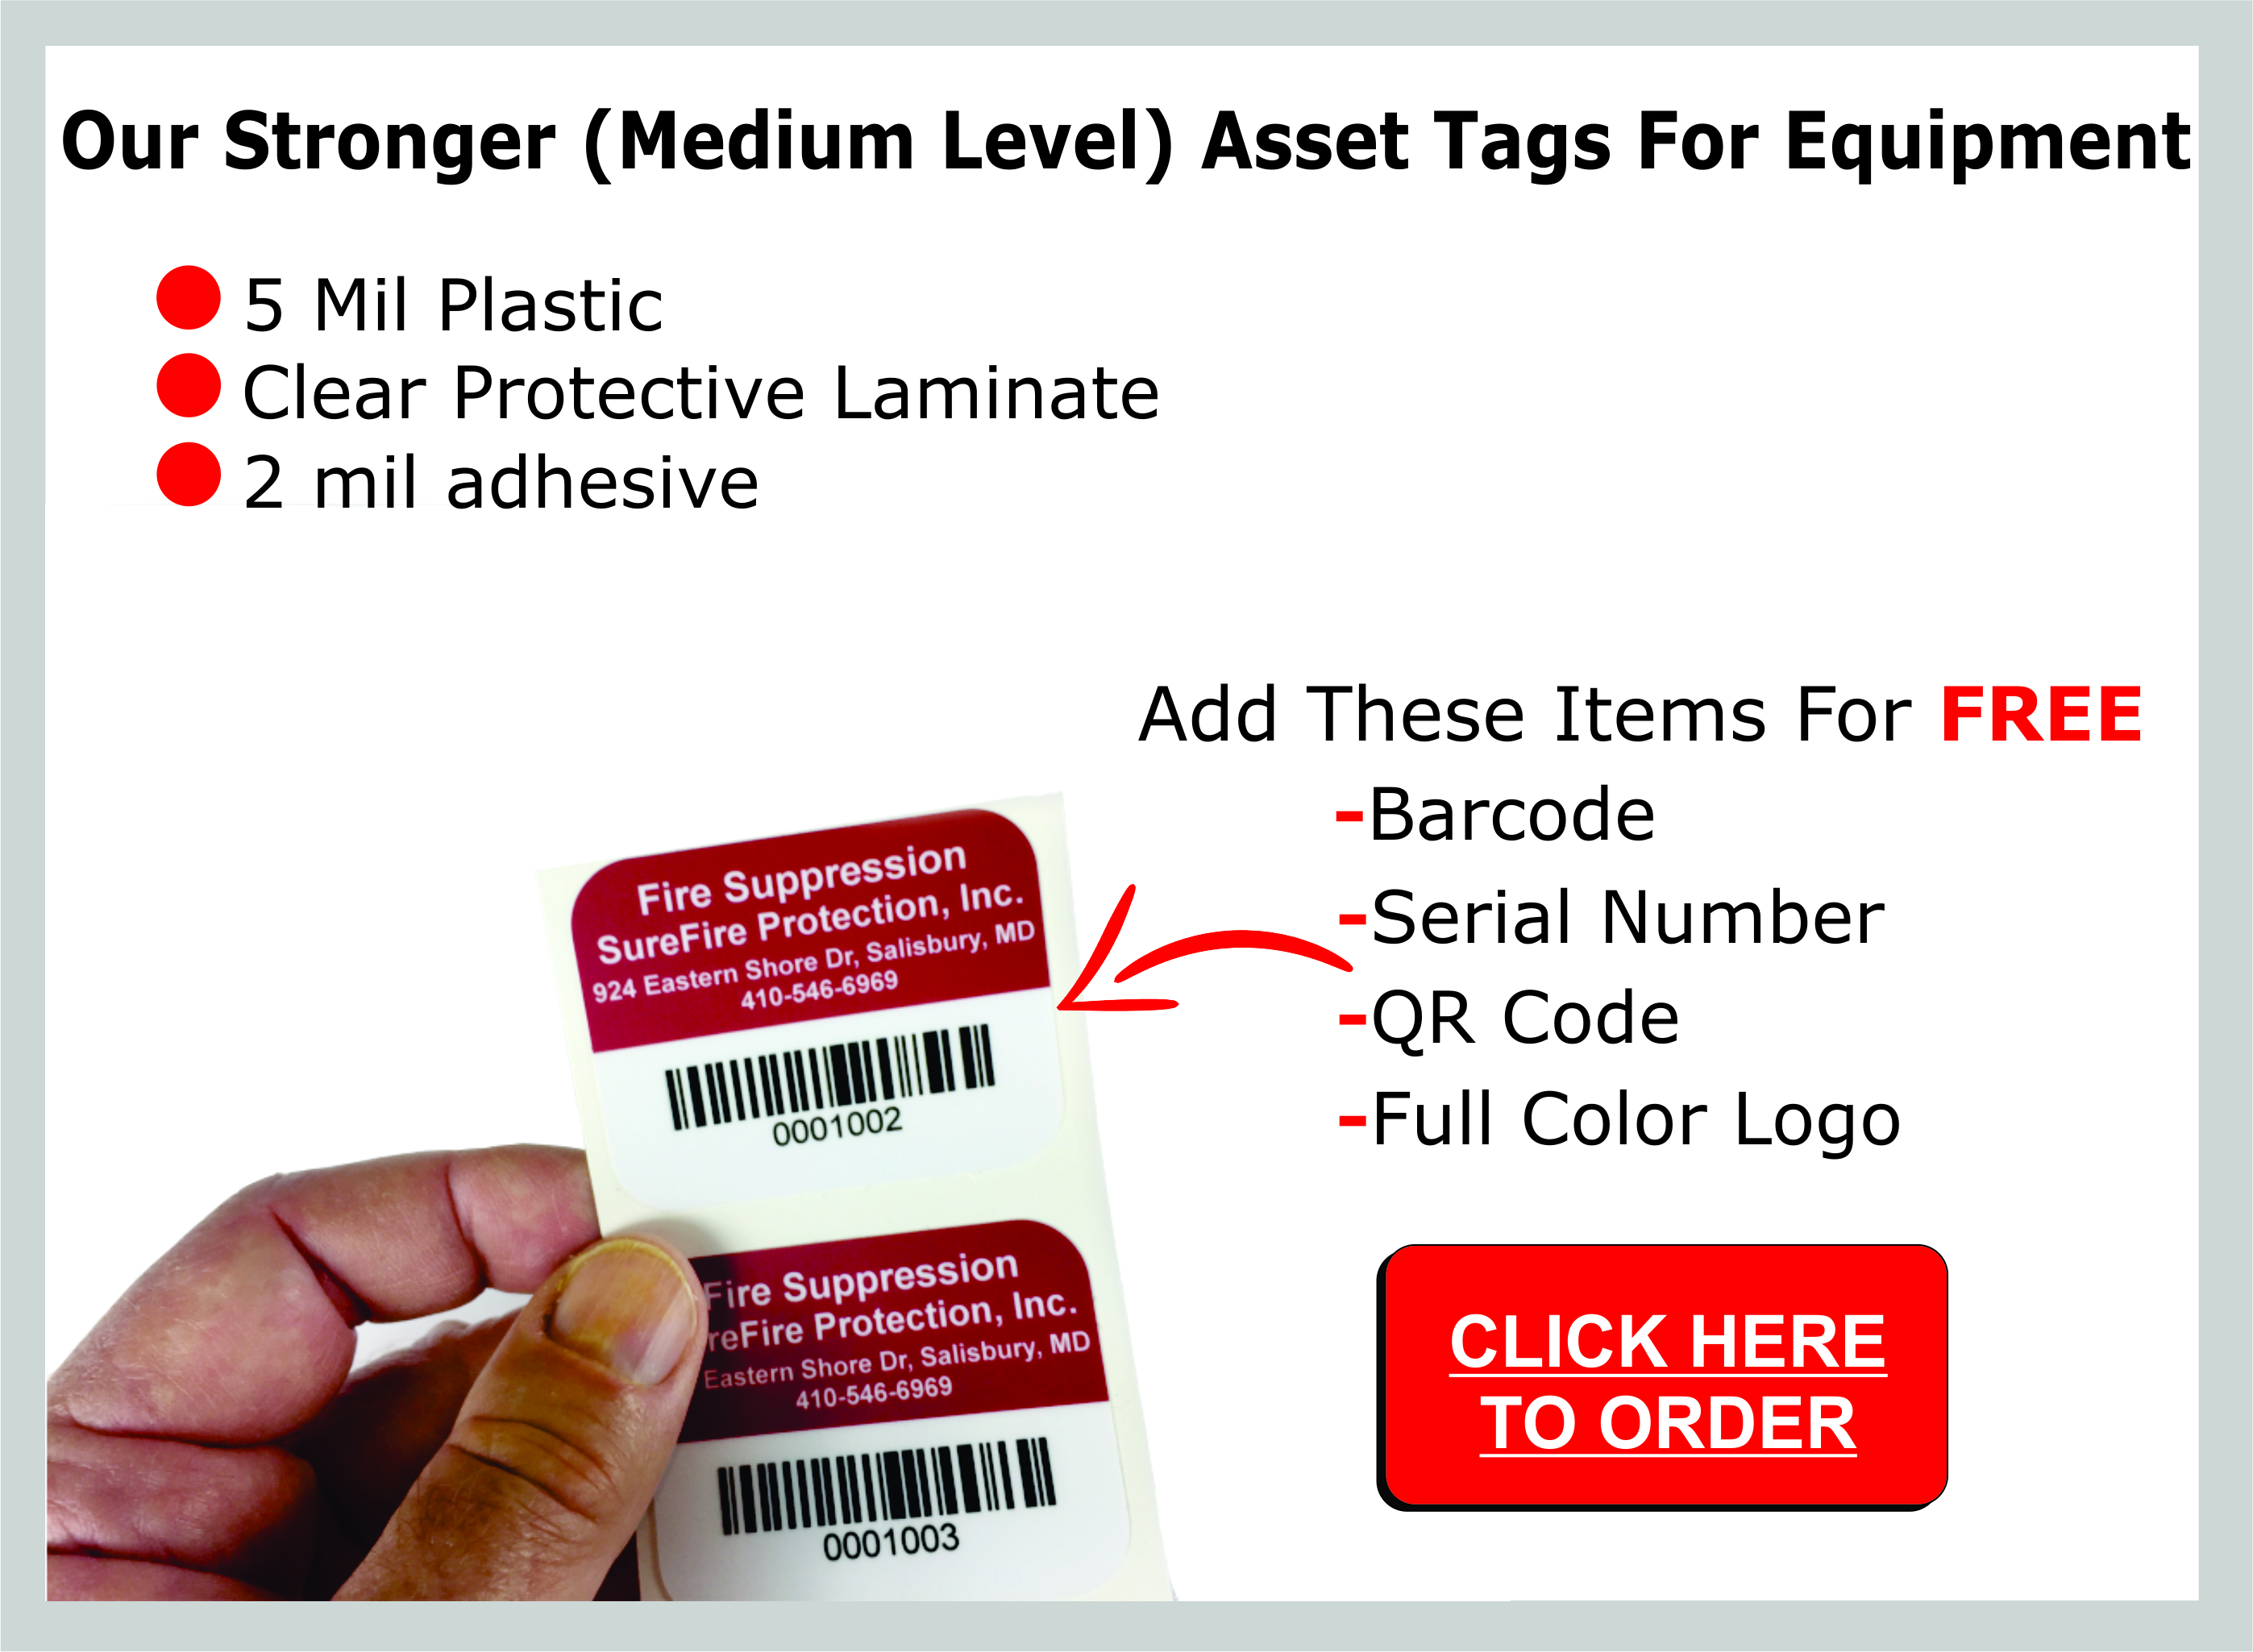 These are our asset tags for equipment